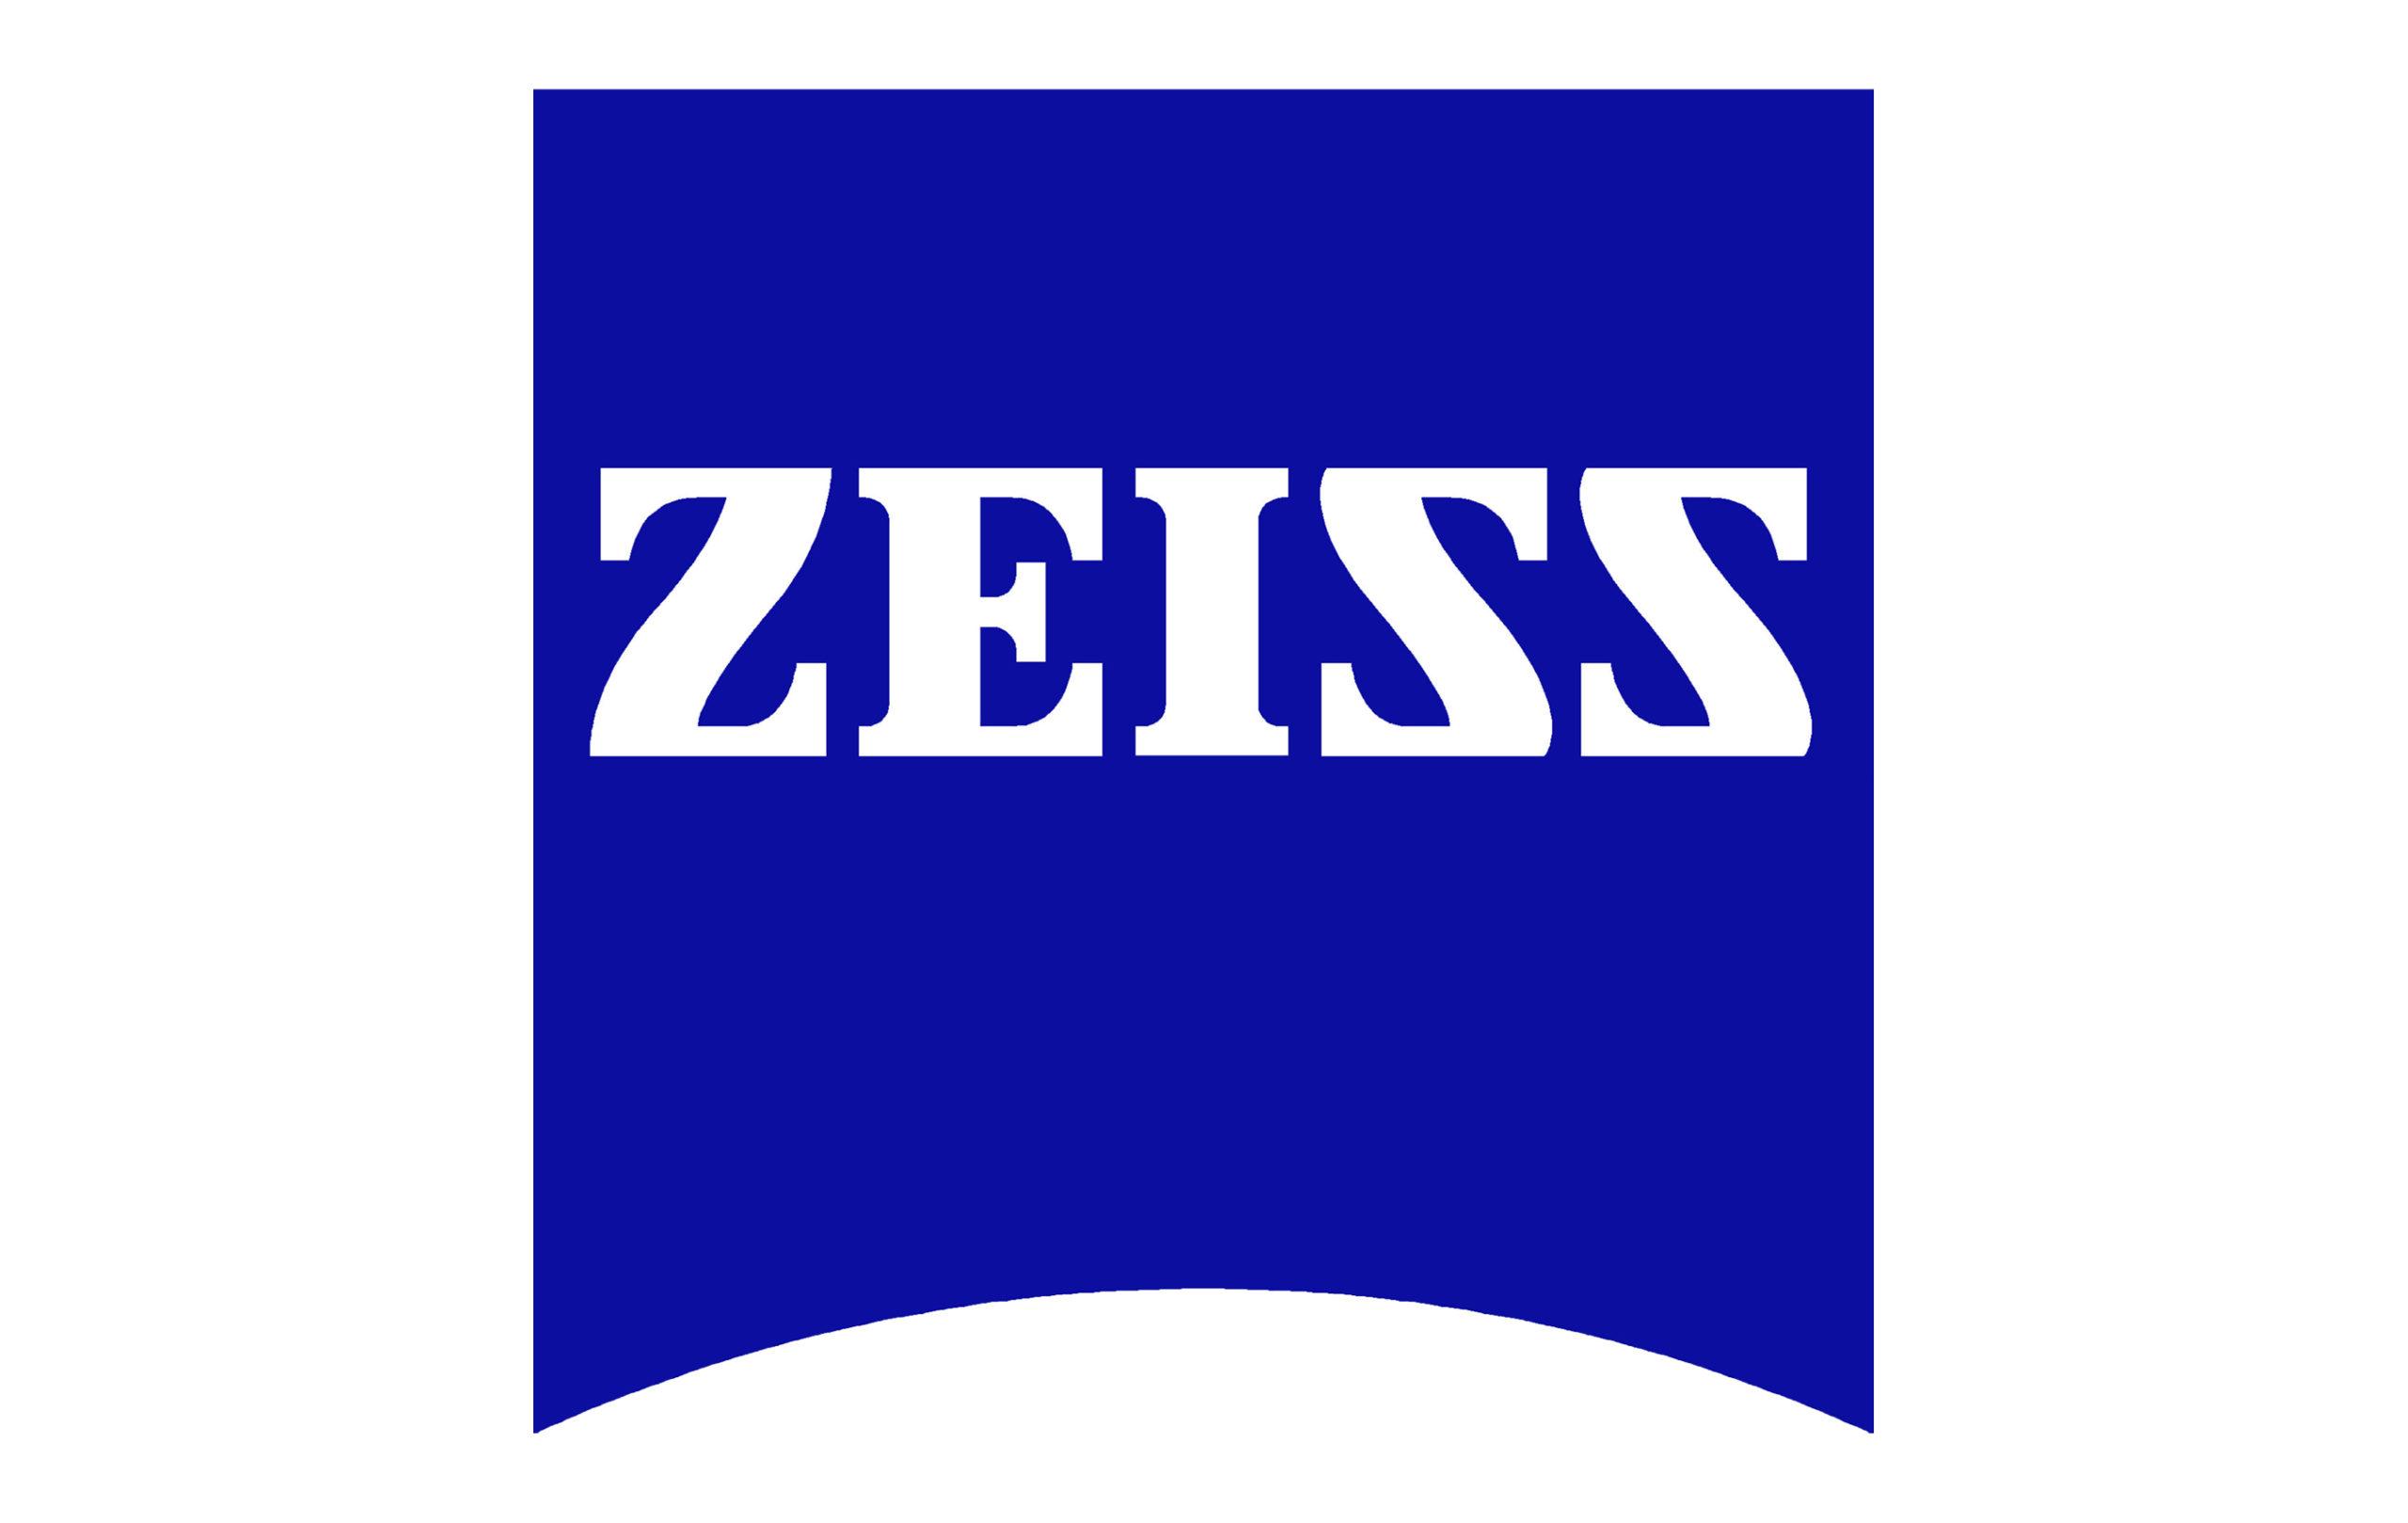 Logo Zeiss.jpg.558 scaled